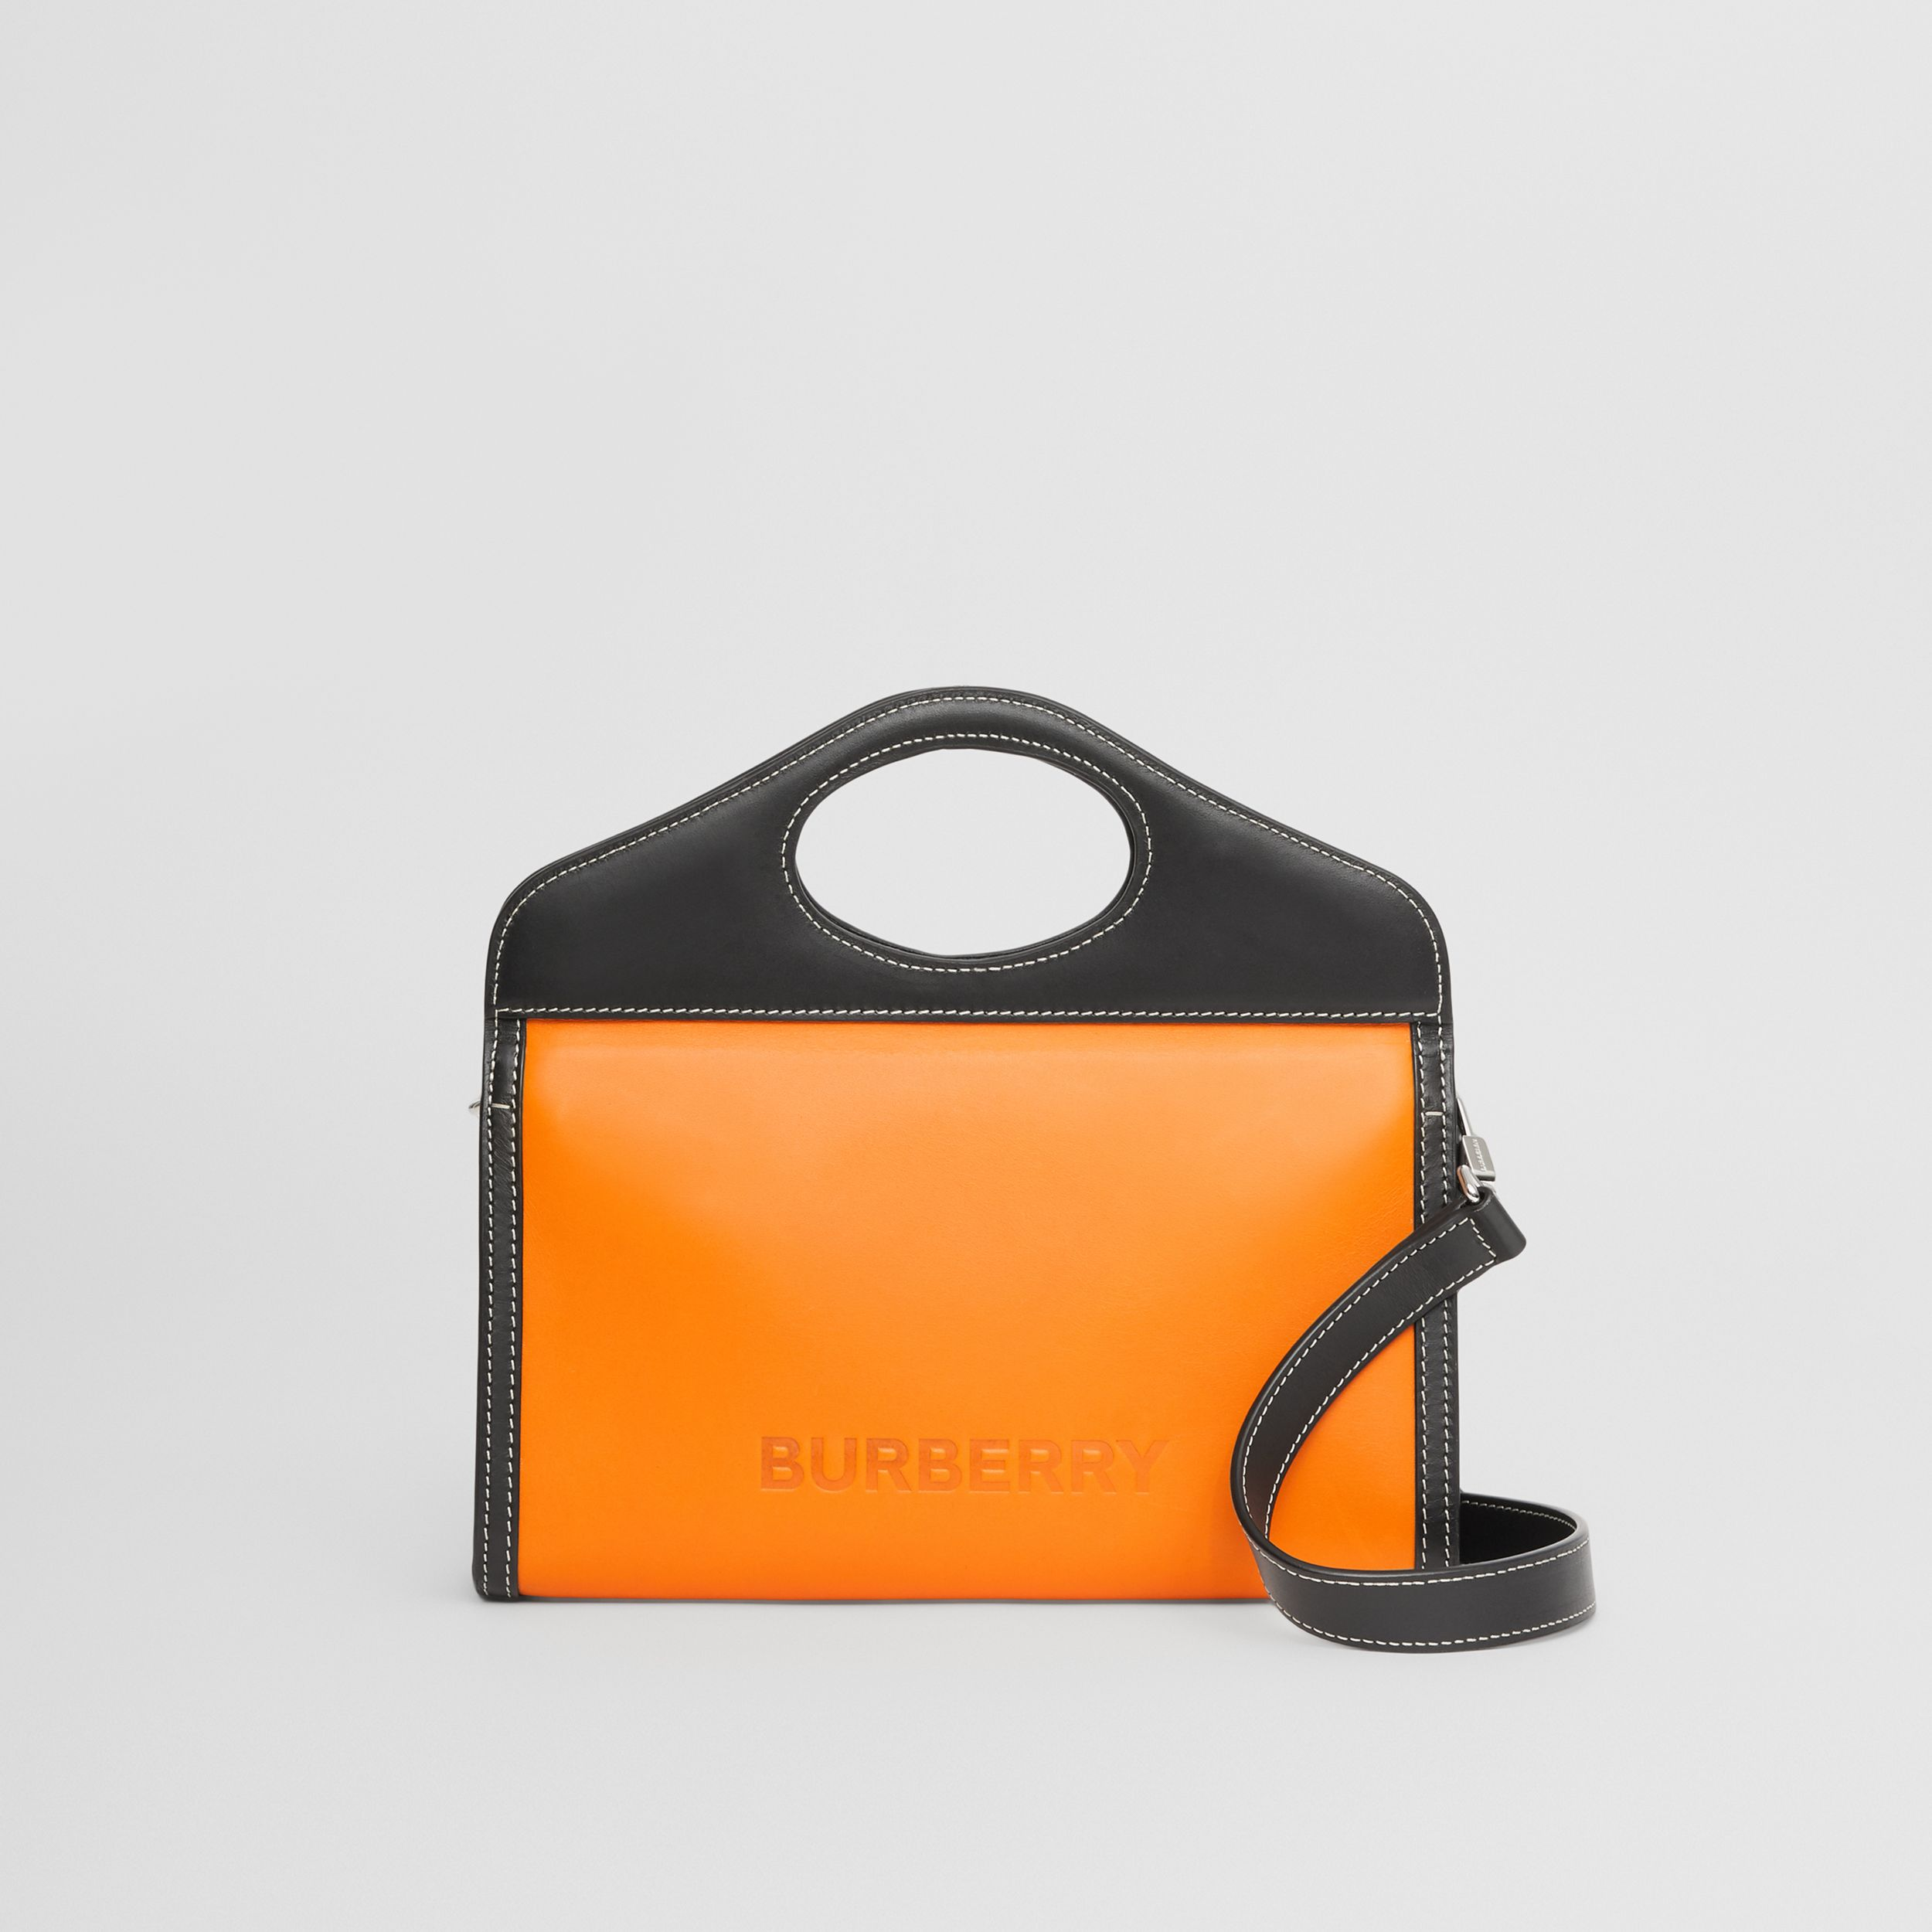 Two-tone Leather Foldover Pocket Bag in Deep Orange/black - Men | Burberry Canada - 3